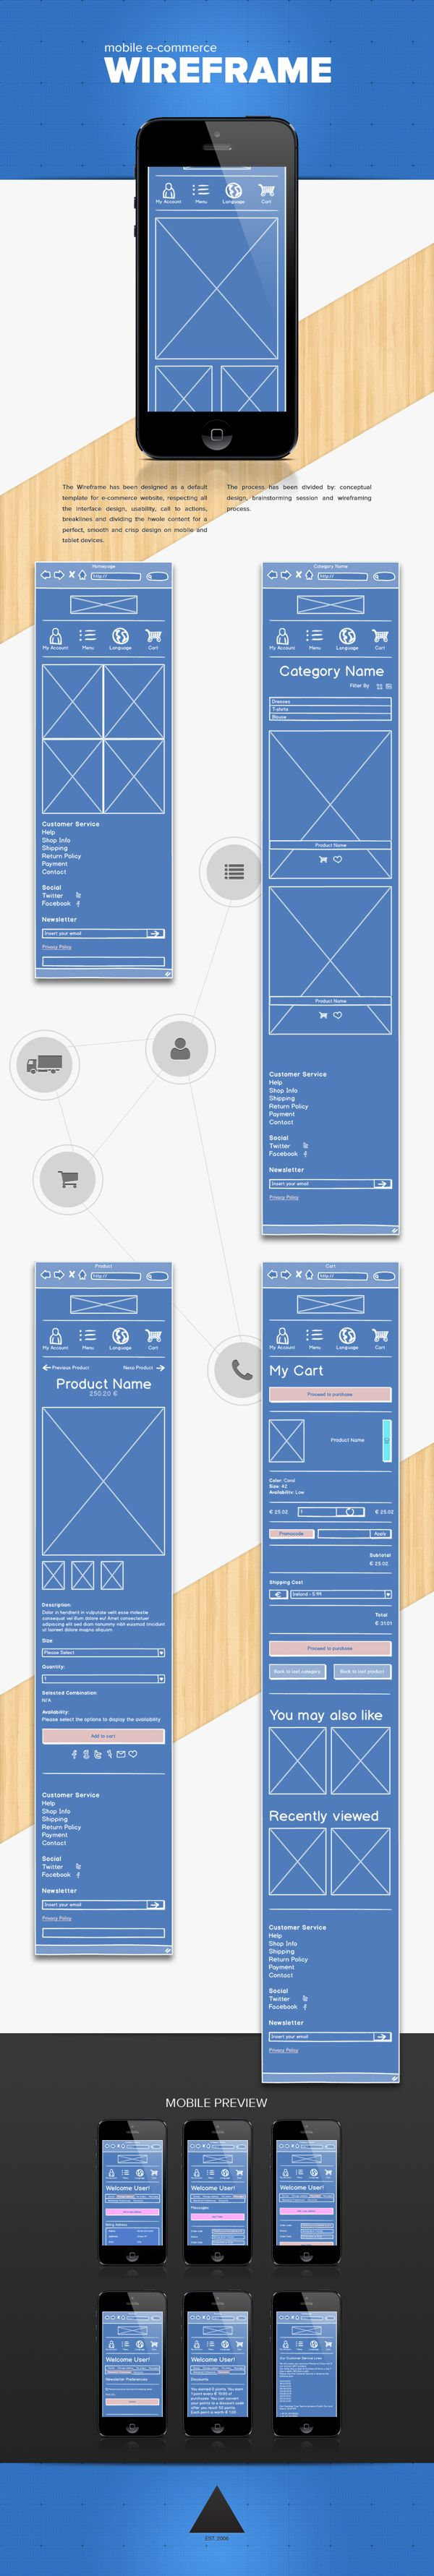 E-Commerce wireframe Concept design by Jacopo Spina, via Behance #CCentral